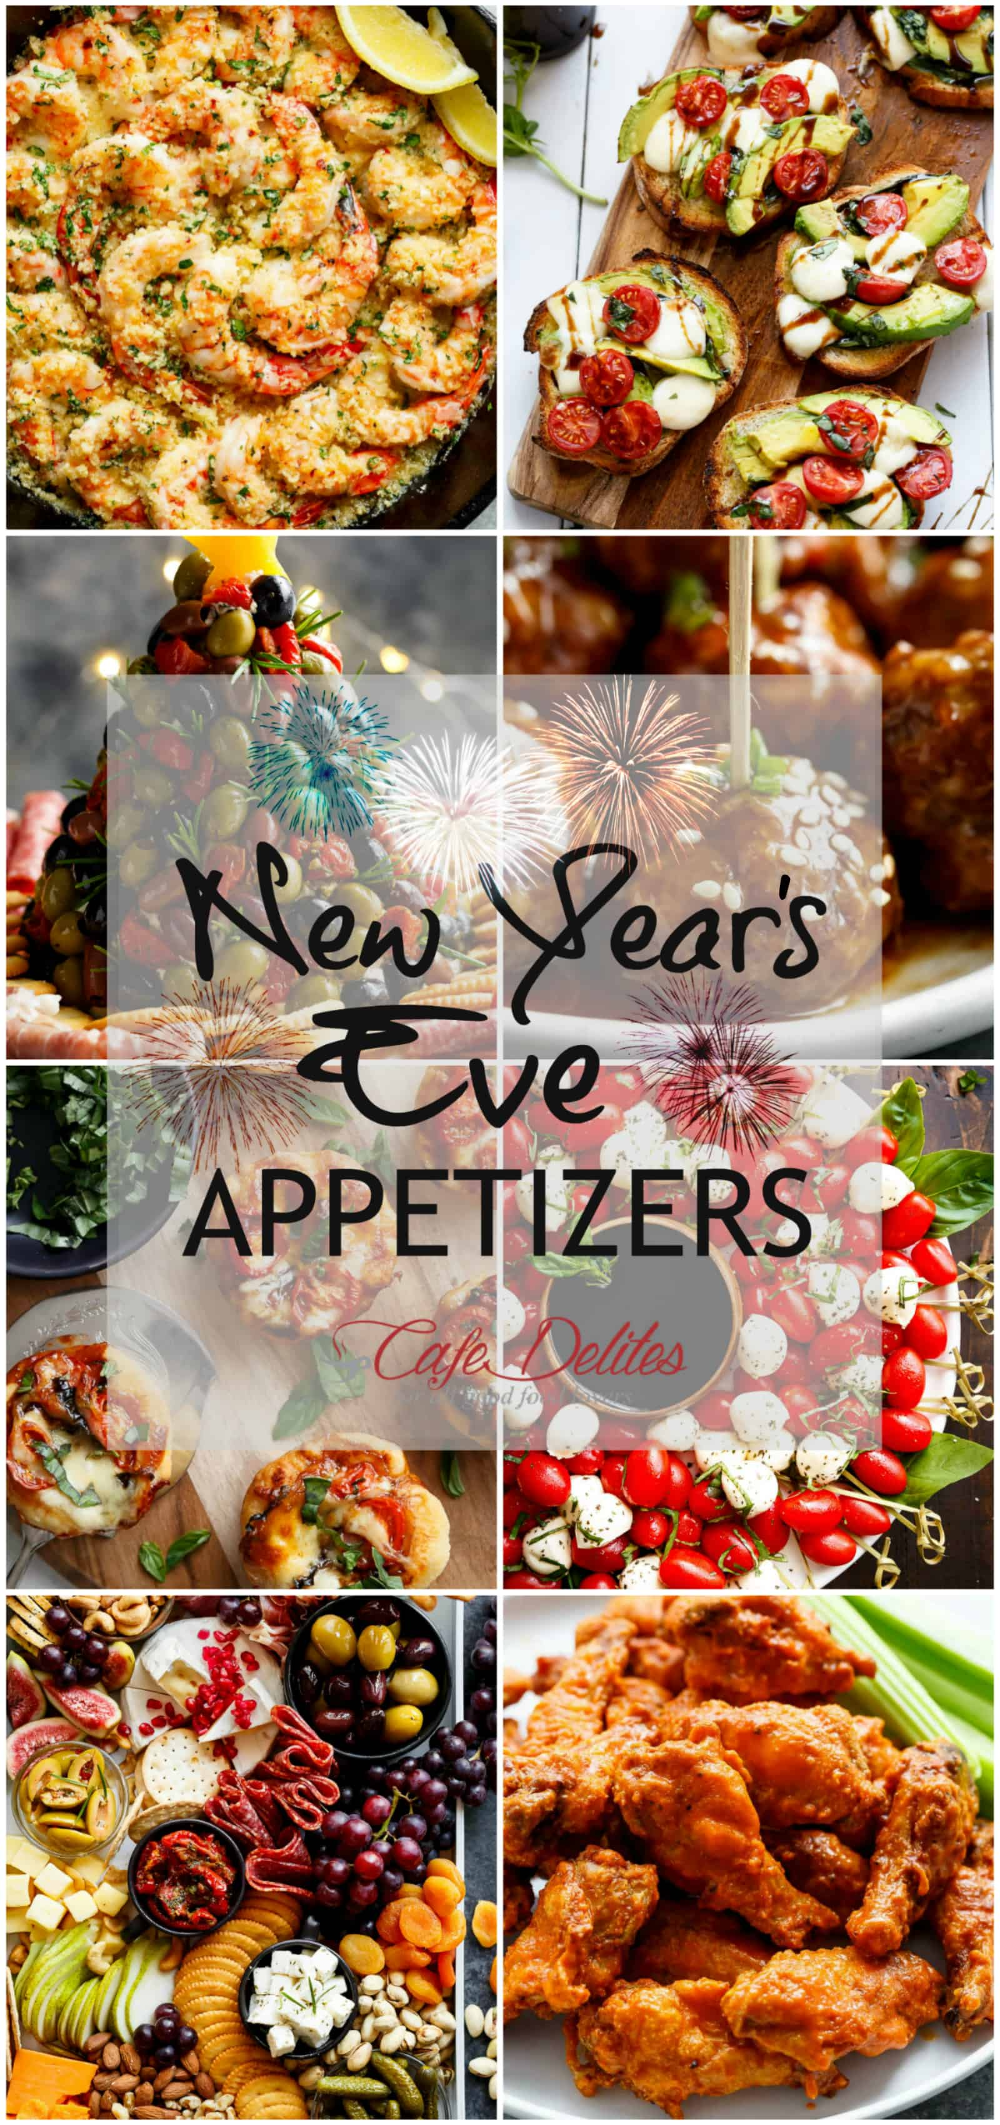 The Best New Year's Eve Appetizers! Cafe Delites New